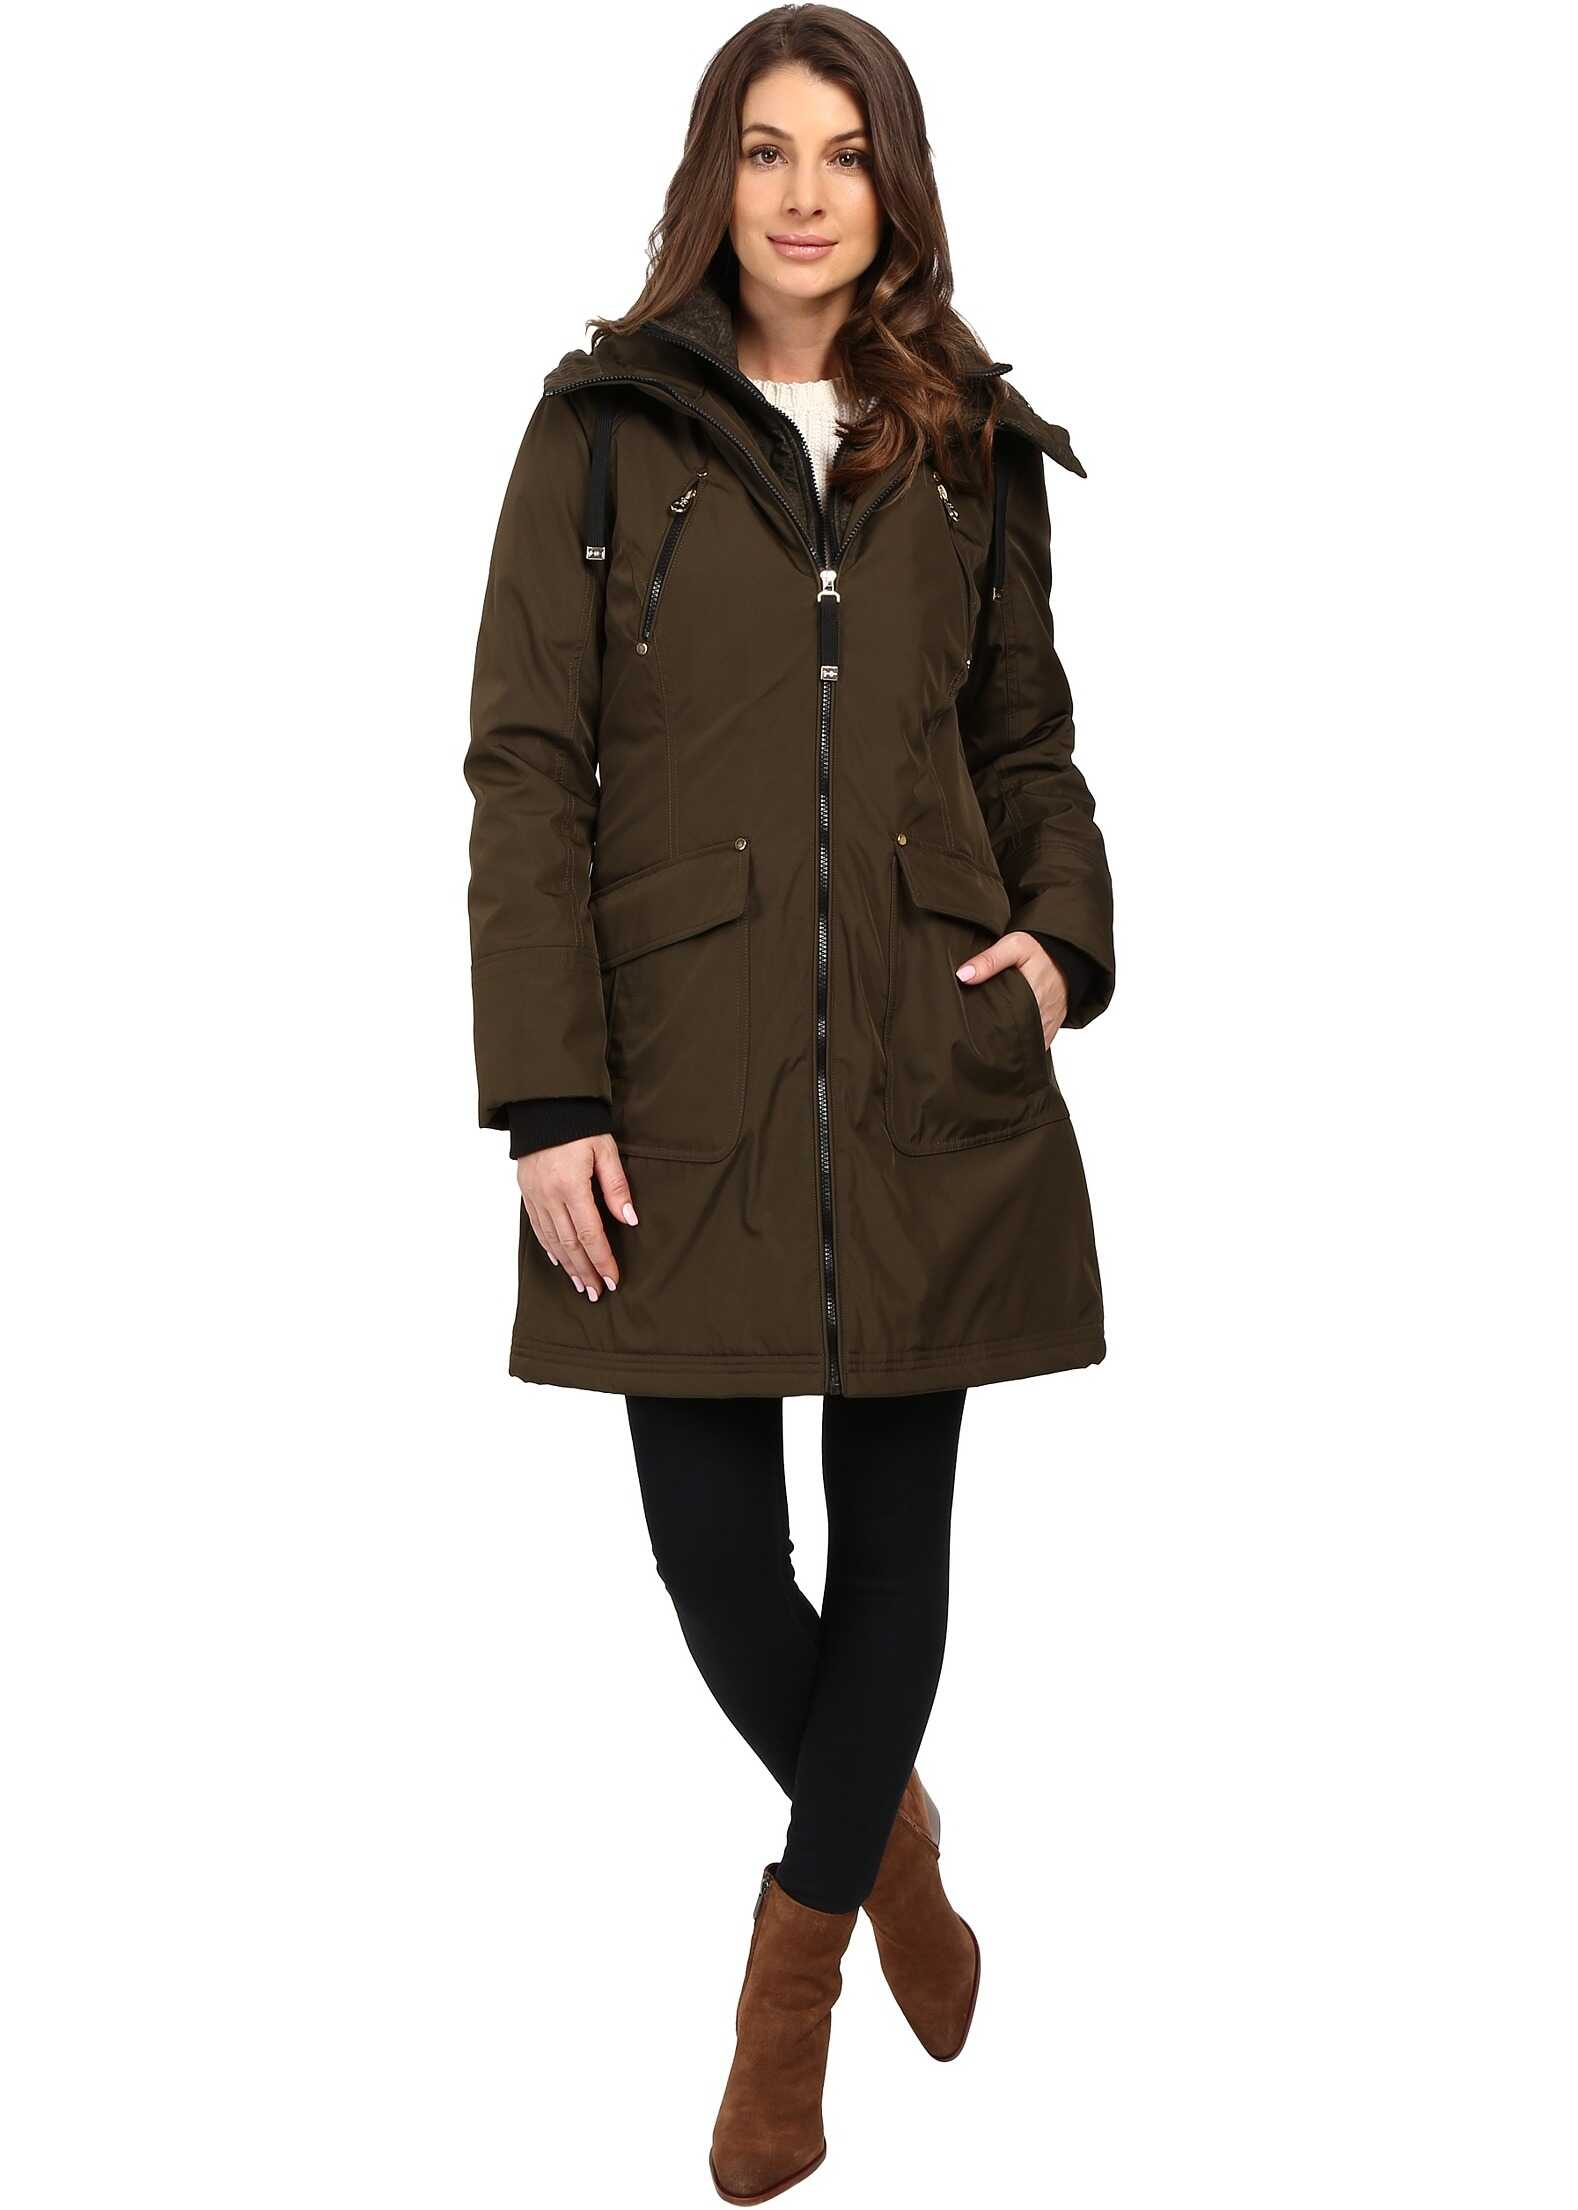 Jessica Simpson Quilted Fill Puffer with Hood and Fleece Bib Loden